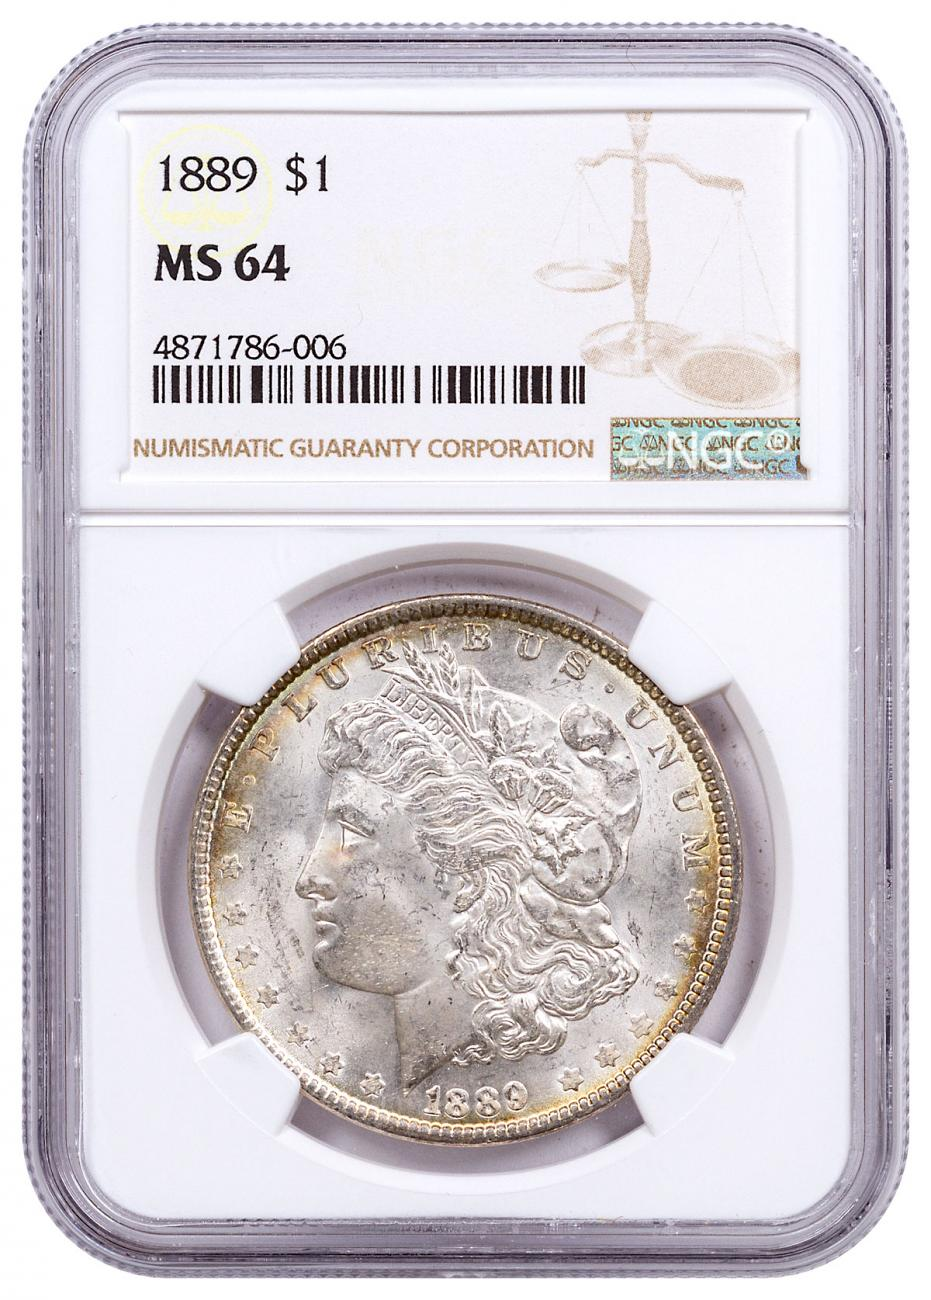 1889 Morgan Silver Dollar NGC MS64 CPCR 6006